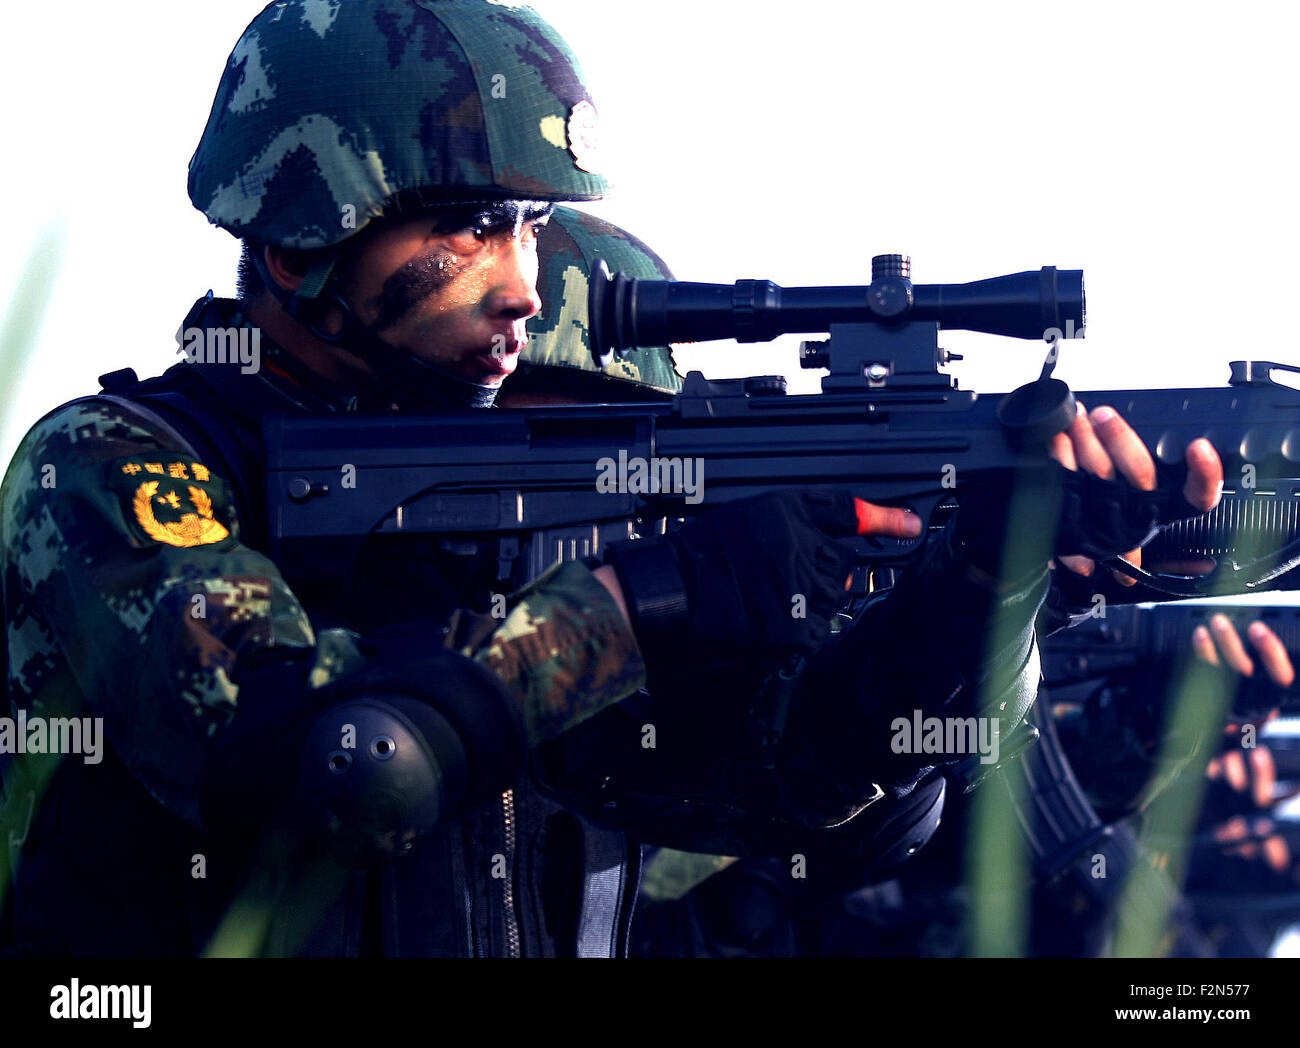 Shanghai, China. 21st Sep, 2015. Armed police sniper Li Jiancheng (L) practises aiming during a drill in Shanghai, - Stock Image